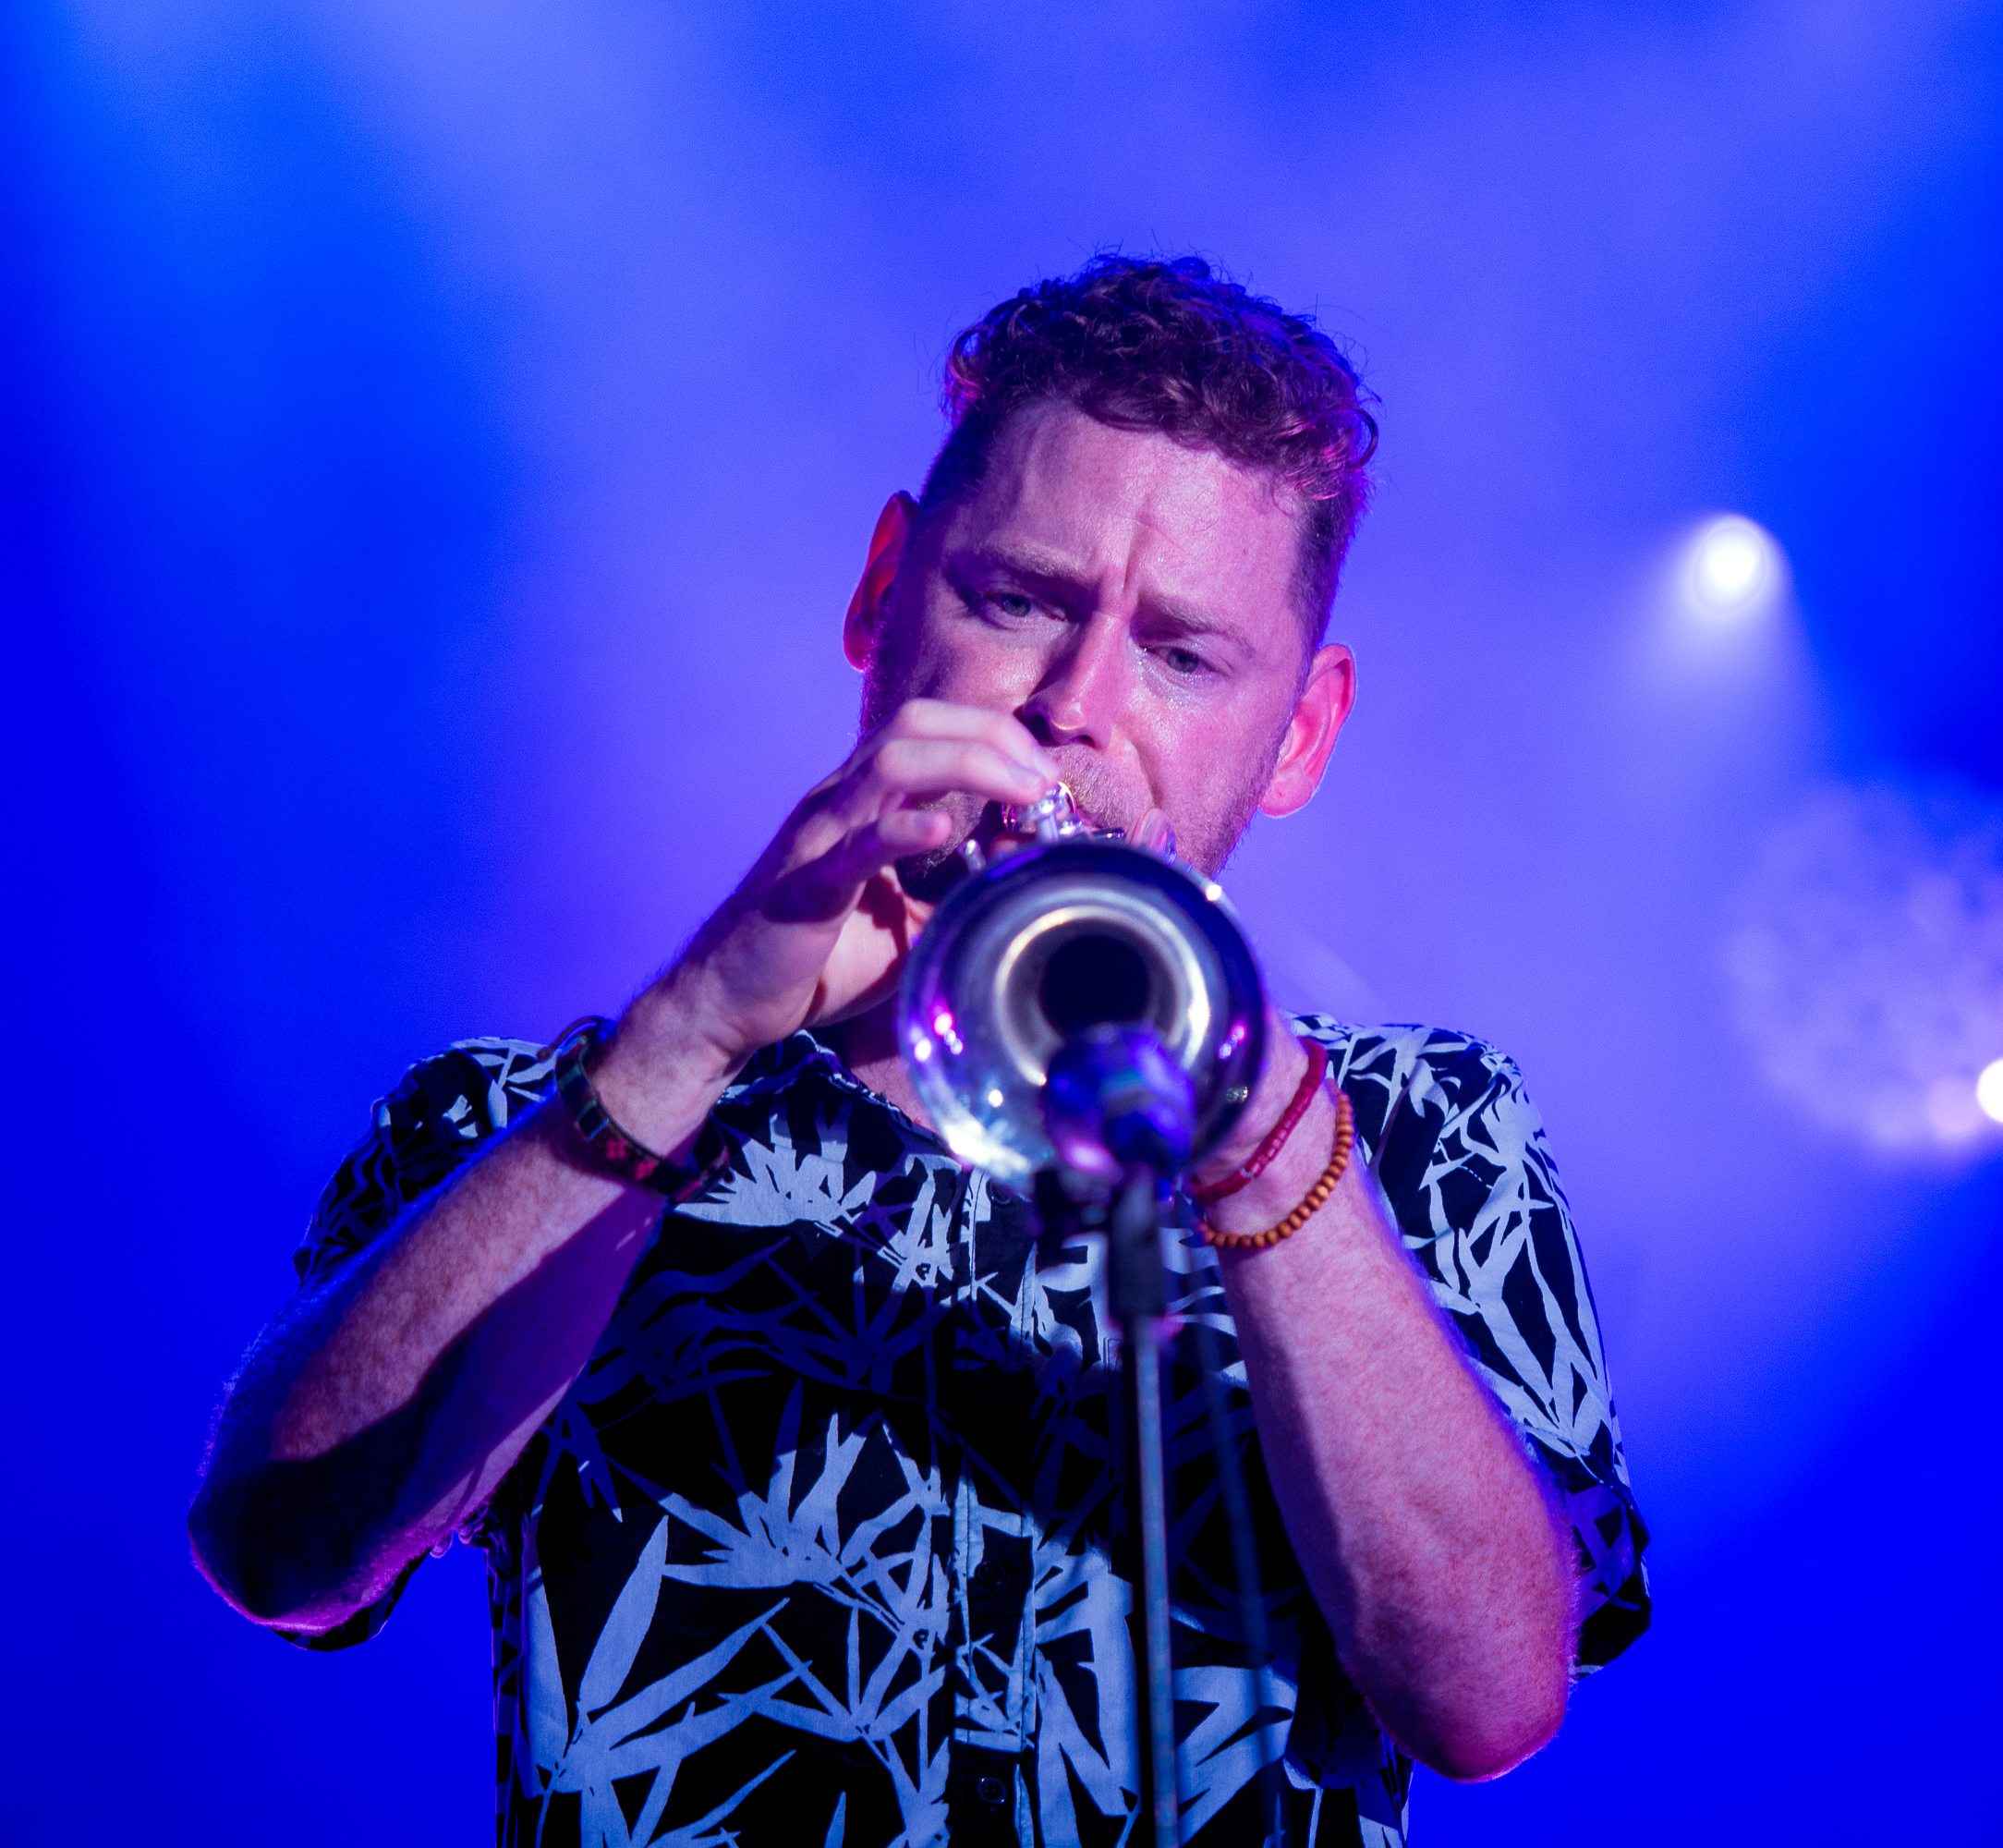 Jon Durbin With The Suffers At The Montreal International Jazz Festival 2018